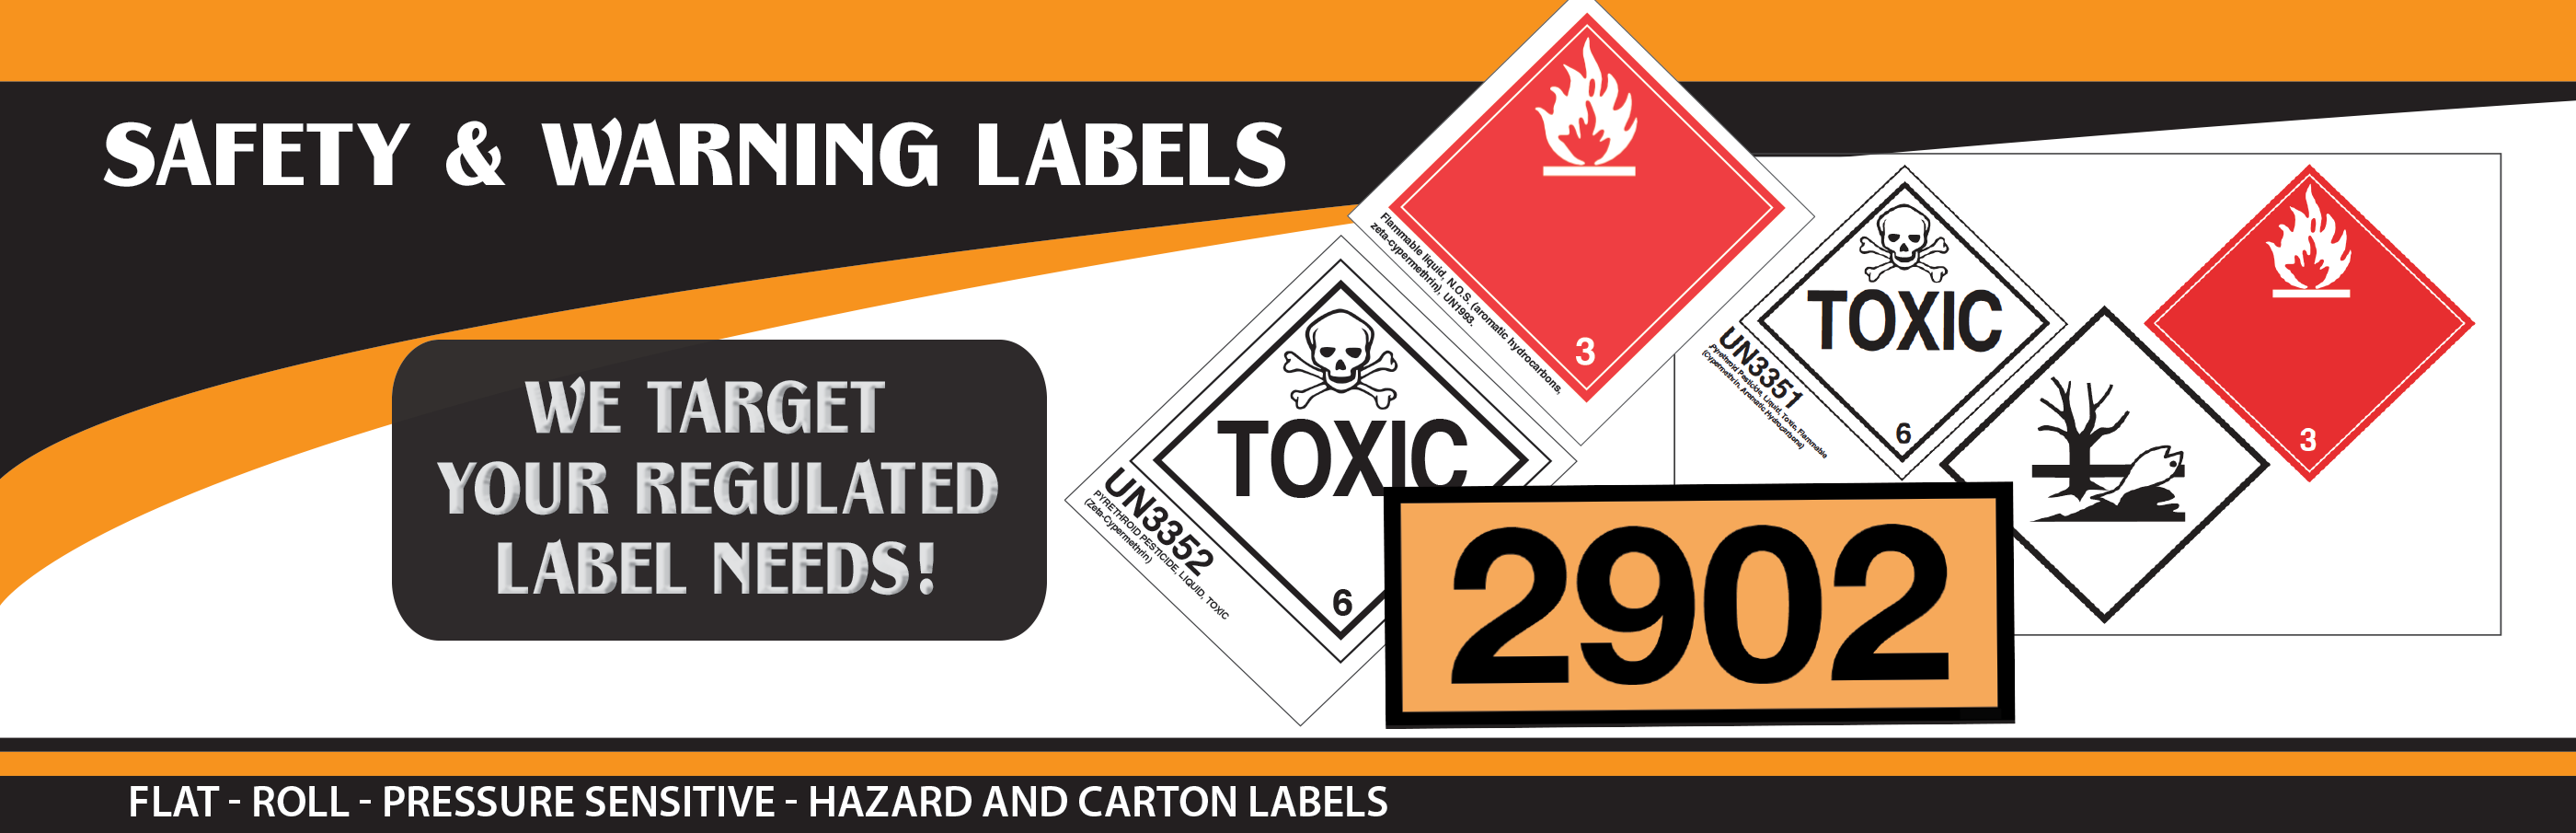 Safety & Warning Labels